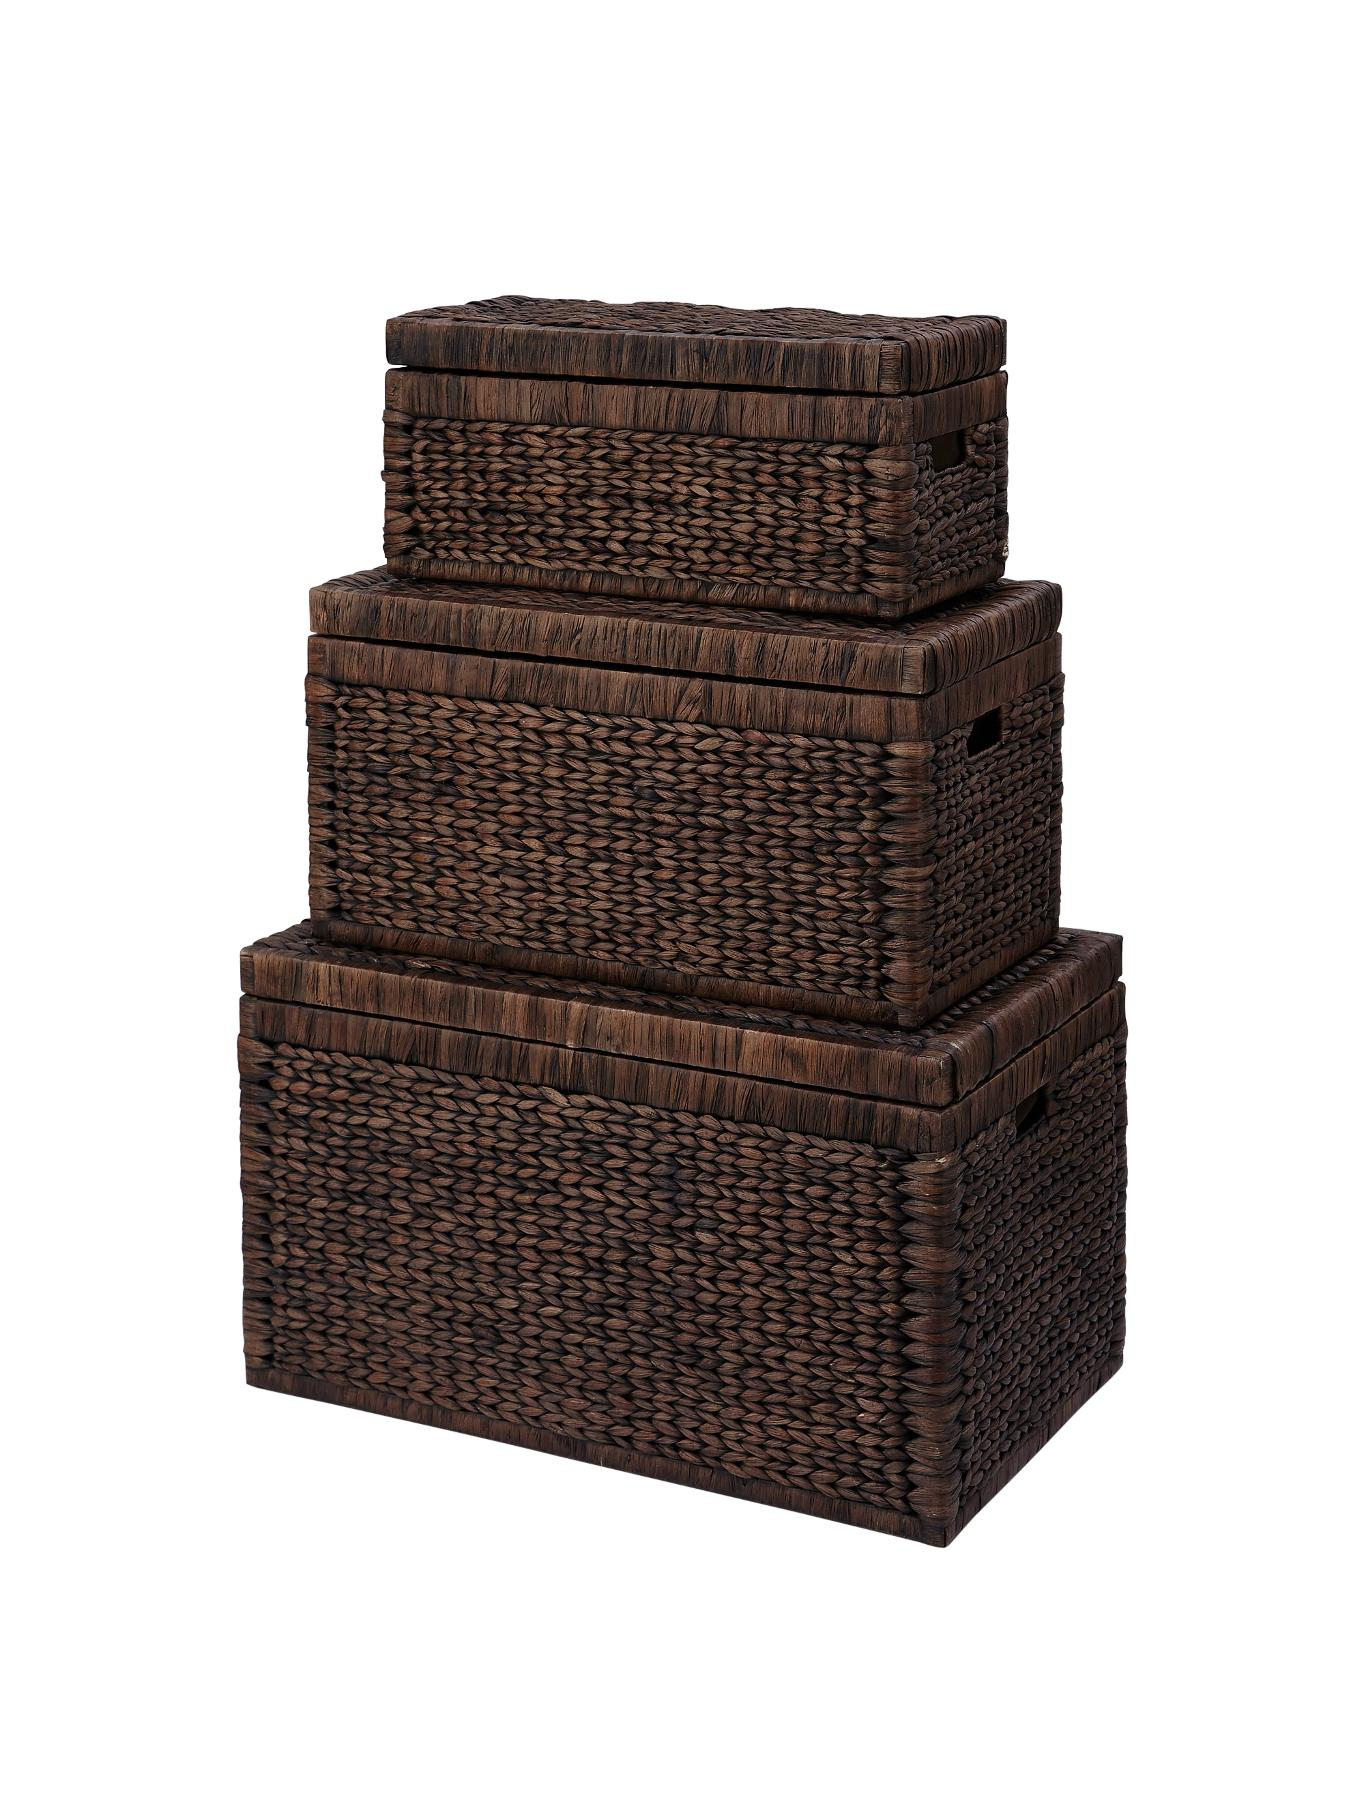 Set of 3 Arrow Weave Wicker Storage Chests - Chocolate